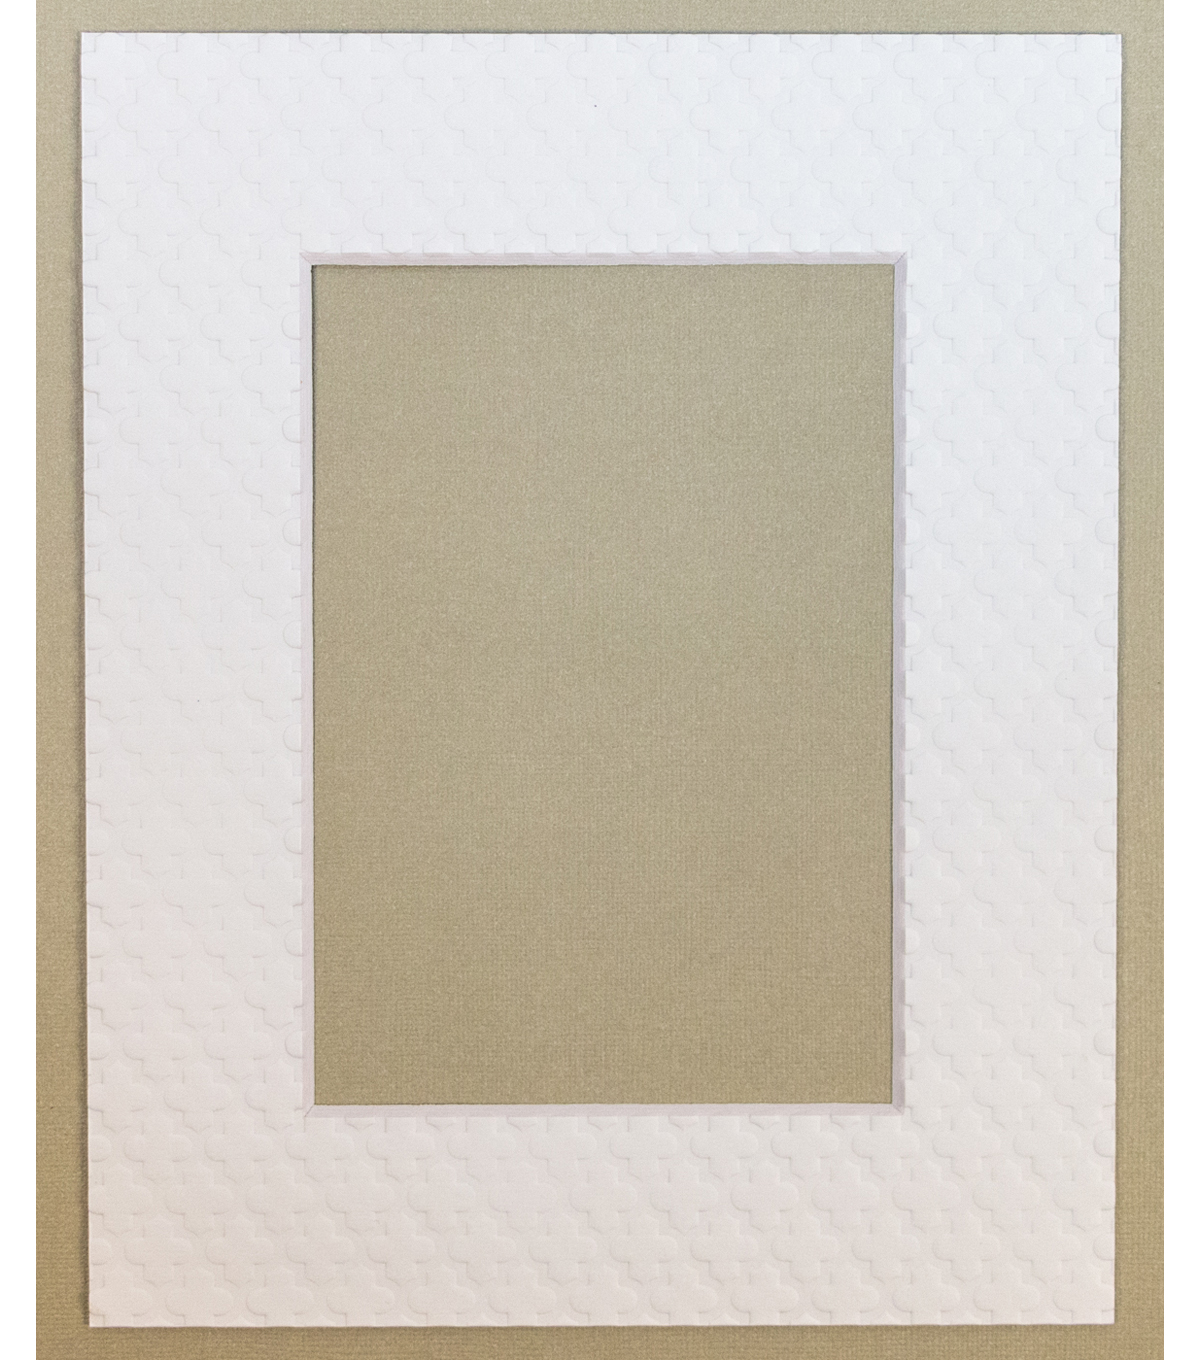 Framing Mat 8X10-White With Raised Design